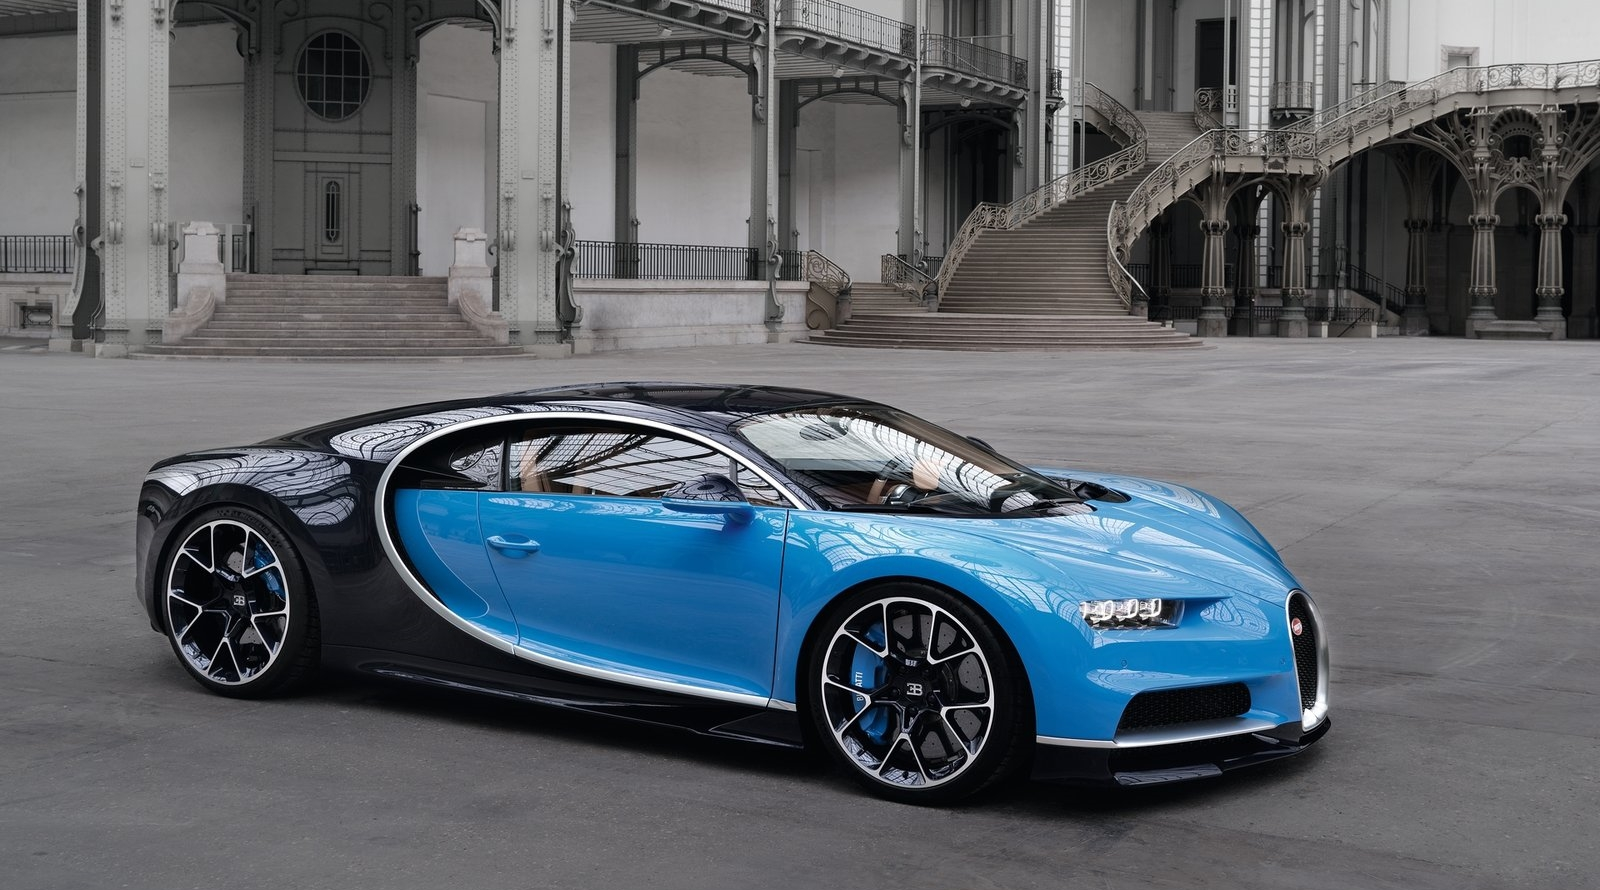 bugatti chiron wallpapers images photos pictures backgrounds. Black Bedroom Furniture Sets. Home Design Ideas